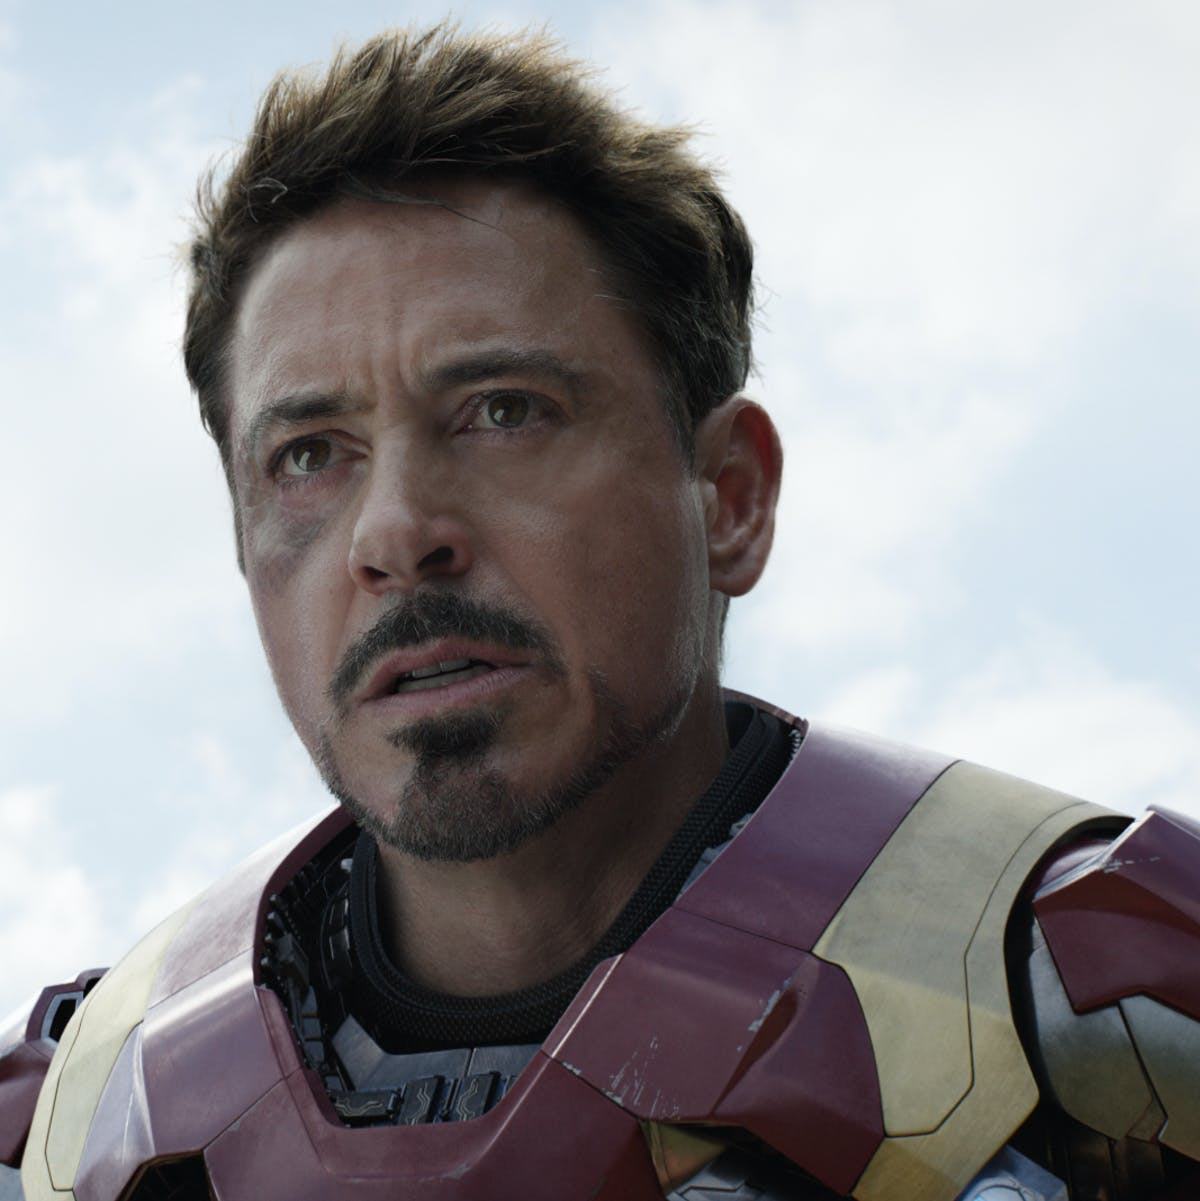 Marvel Phase 4 Leak: Iron Man 'Black Widow' Cameo May Not Be What You Think